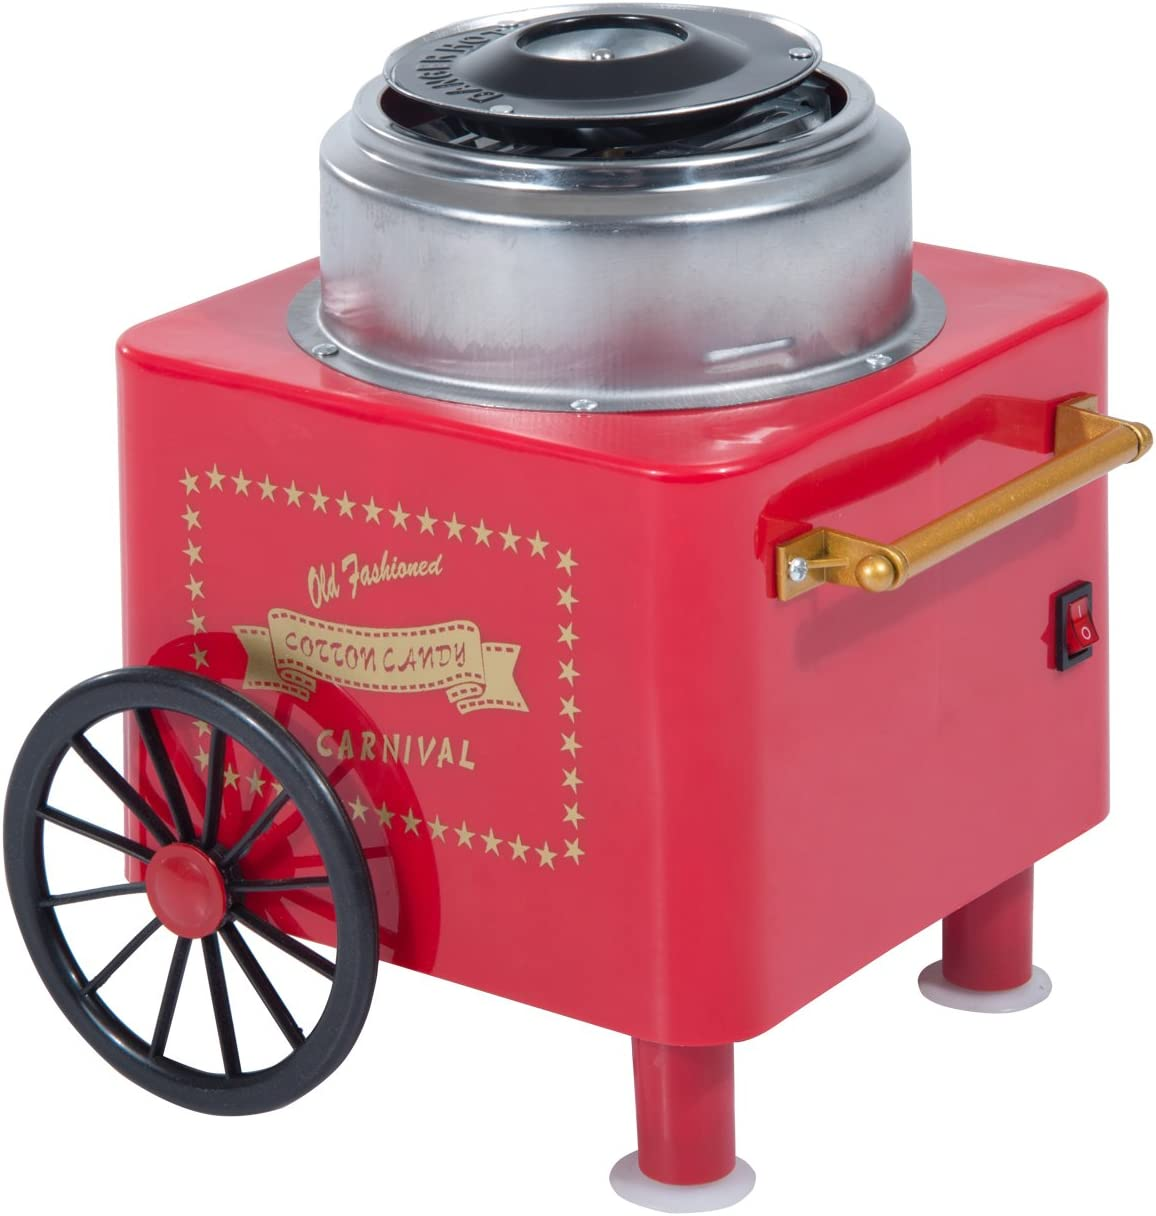 HOMCOM Electric Cotton Candy Maker Candy Floss Machine Cart Kitchen DIY 450W Red Red